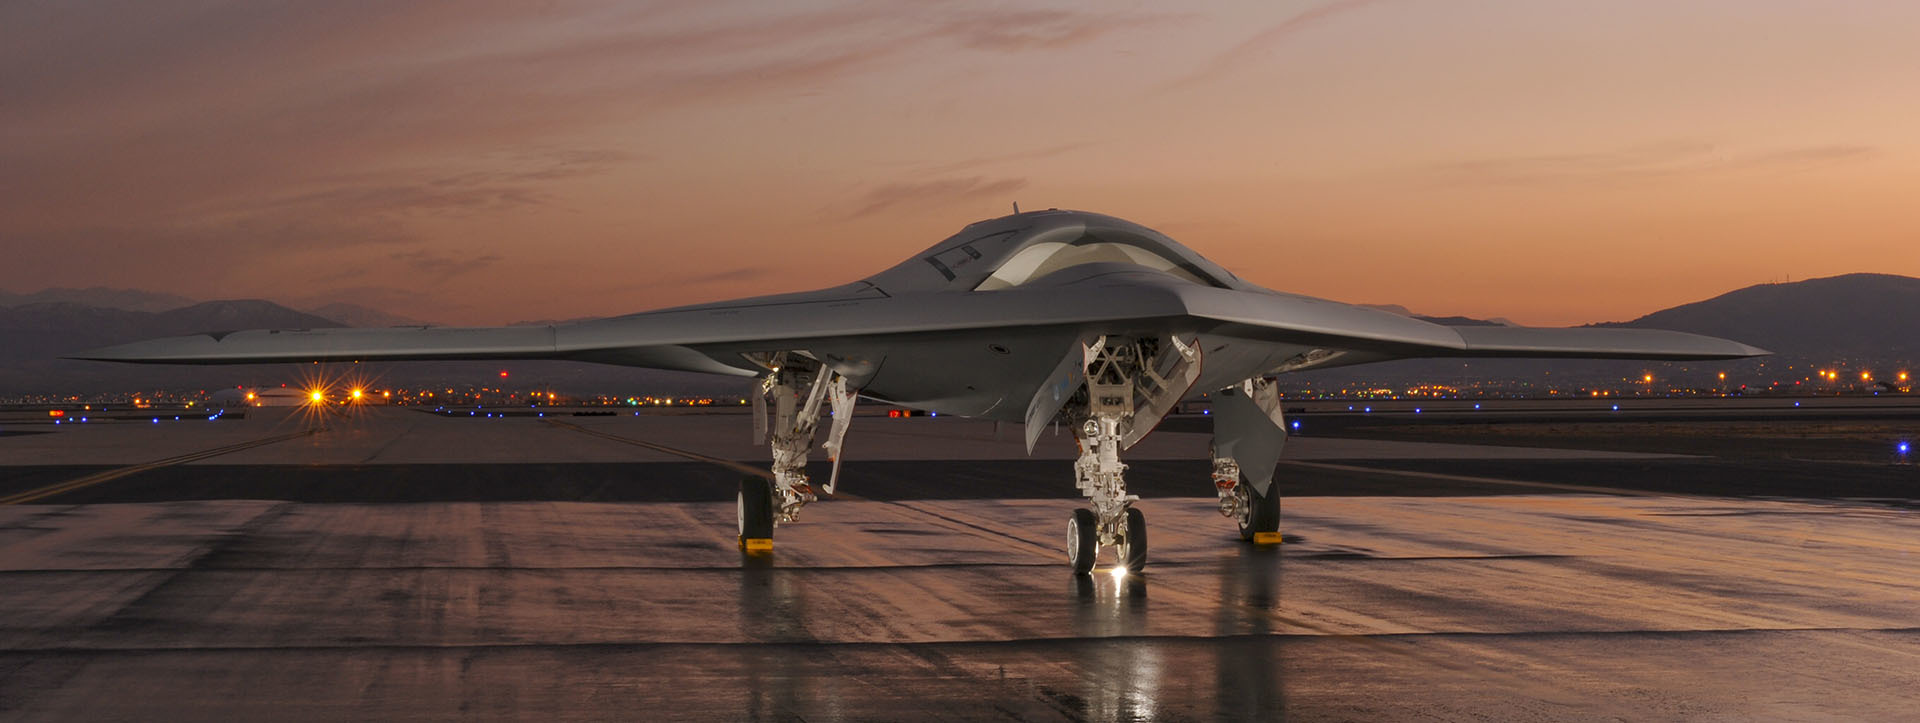 X-47B Unmanned Aircraft